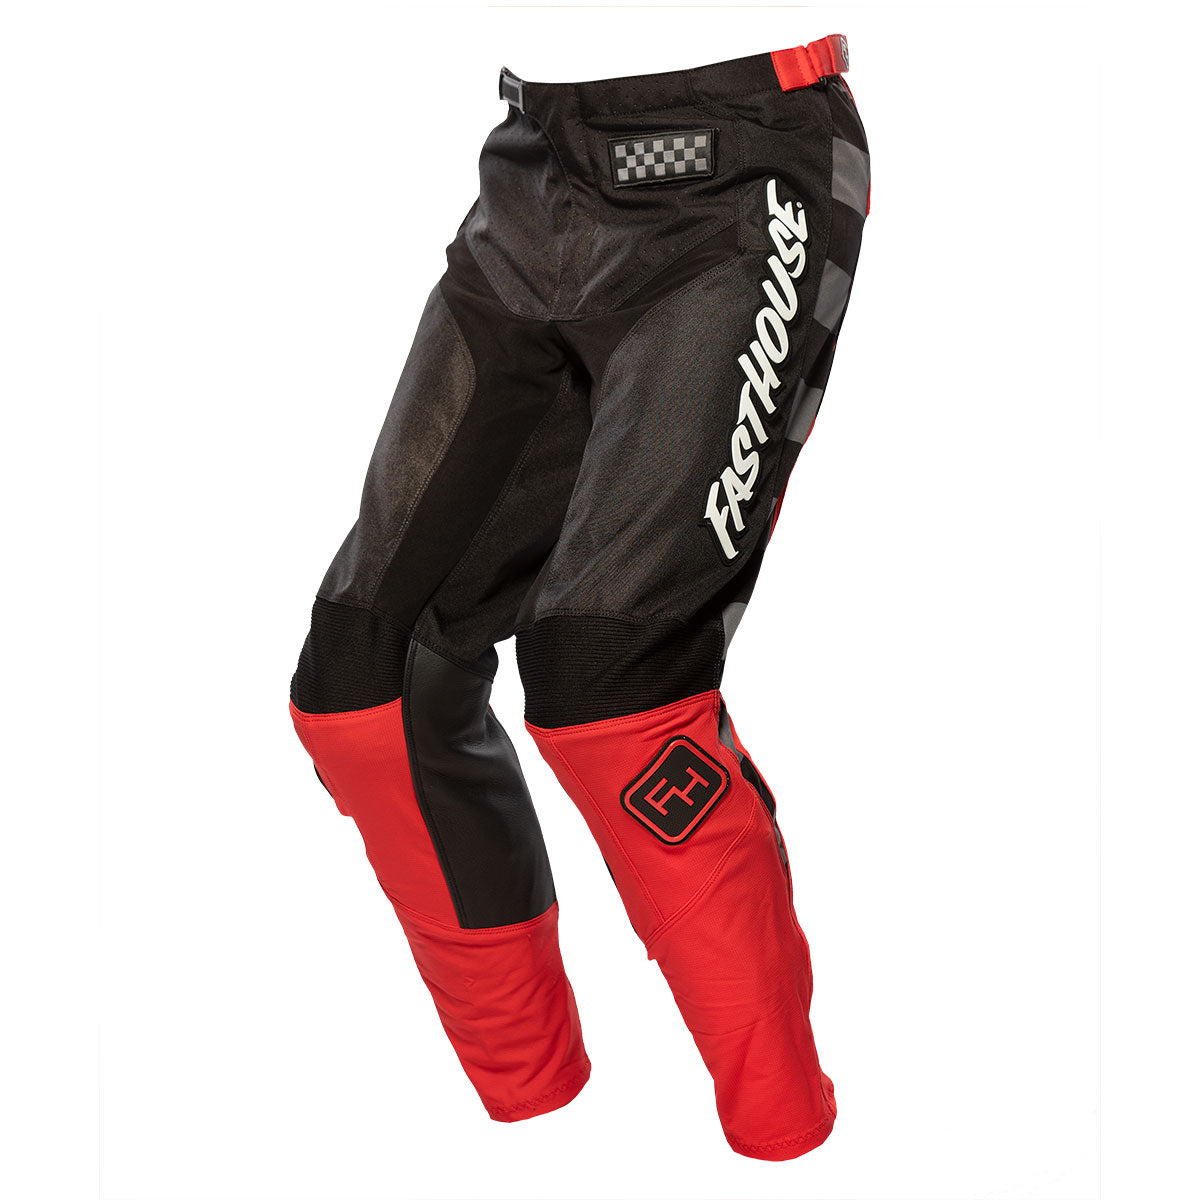 Grindhouse 2.0 Pants - Black/Red